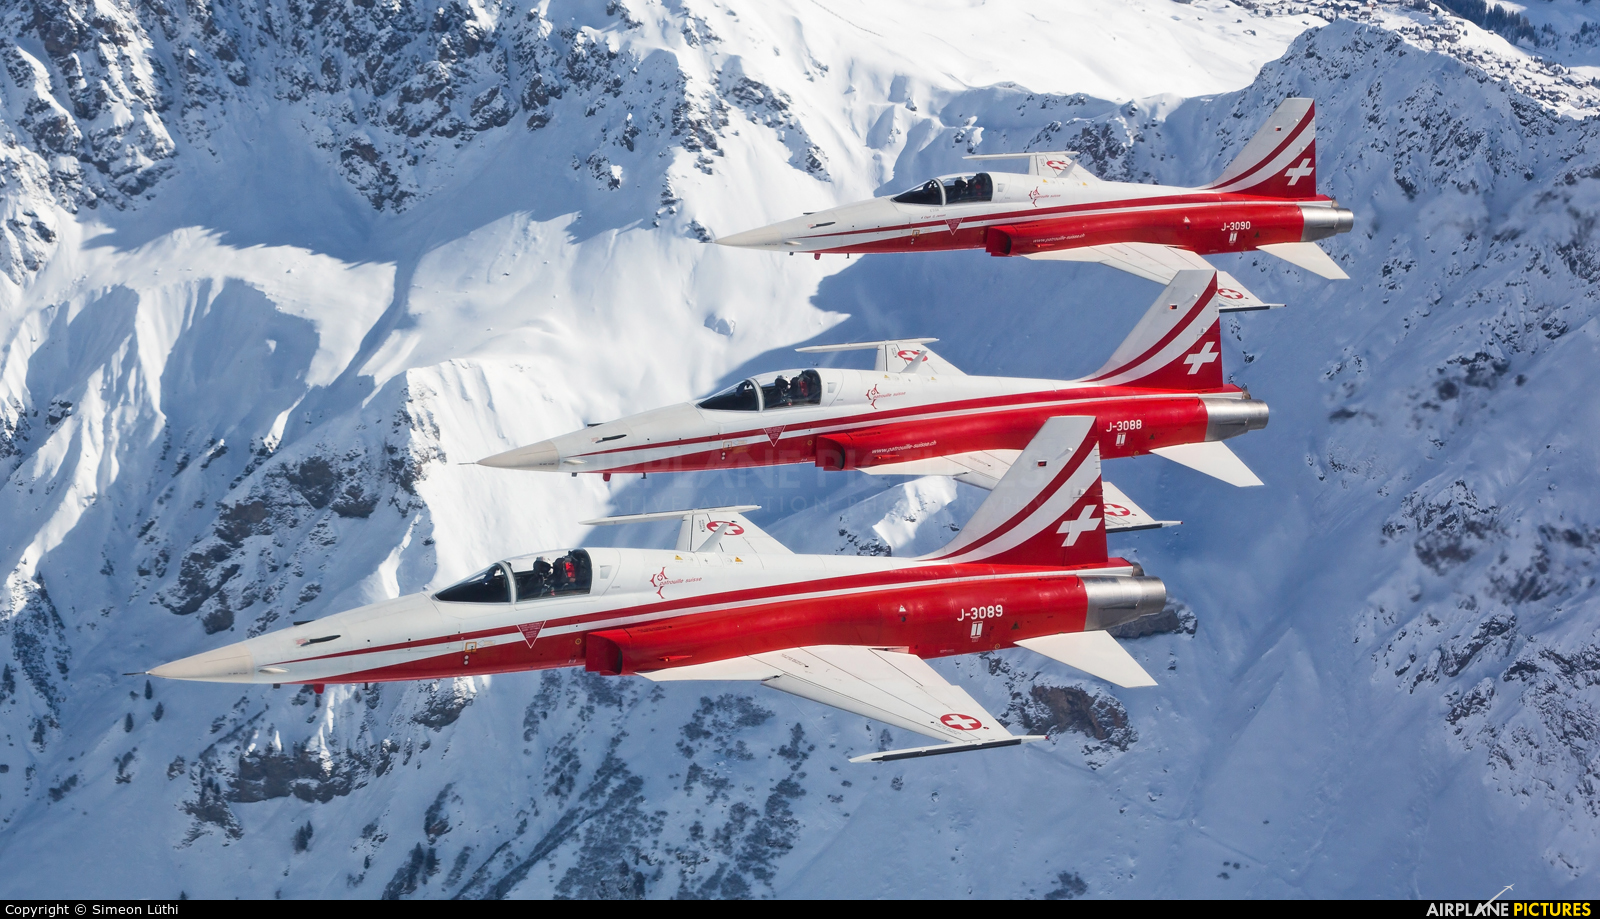 Switzerland - Air Force:  Patrouille de Suisse J-3089 aircraft at Off Airport - Swiss Alps